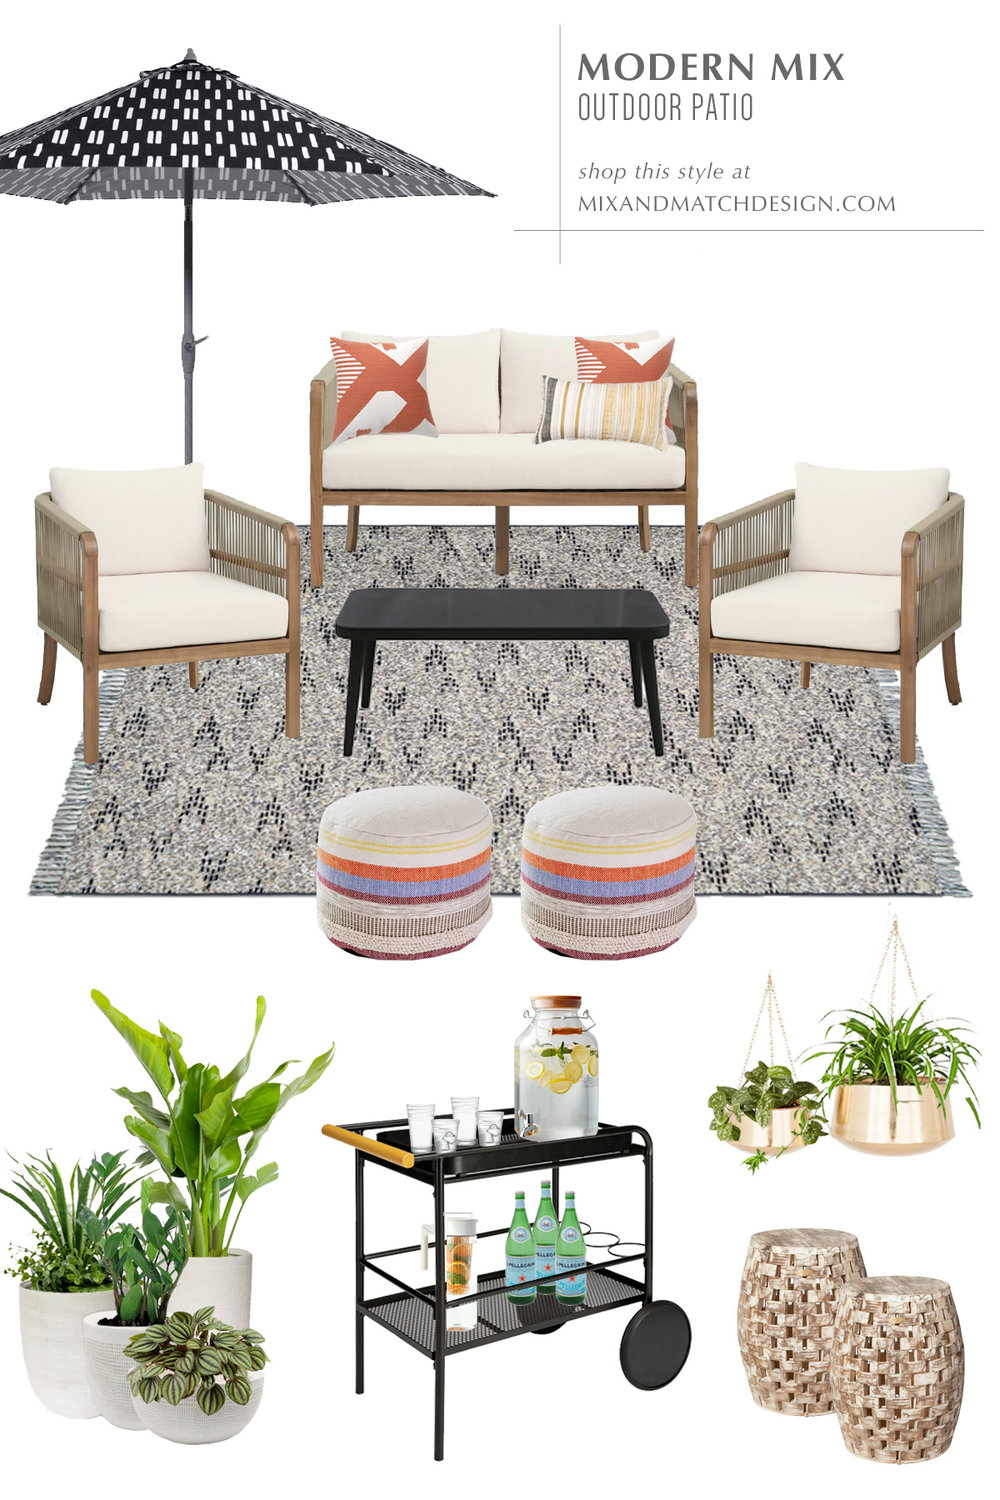 Head over to this post for inspiration on how to design an outdoor space. I've got three patio looks in three different styles for under $3,000 to share with you! This one is the Modern Mix outdoor patio design.